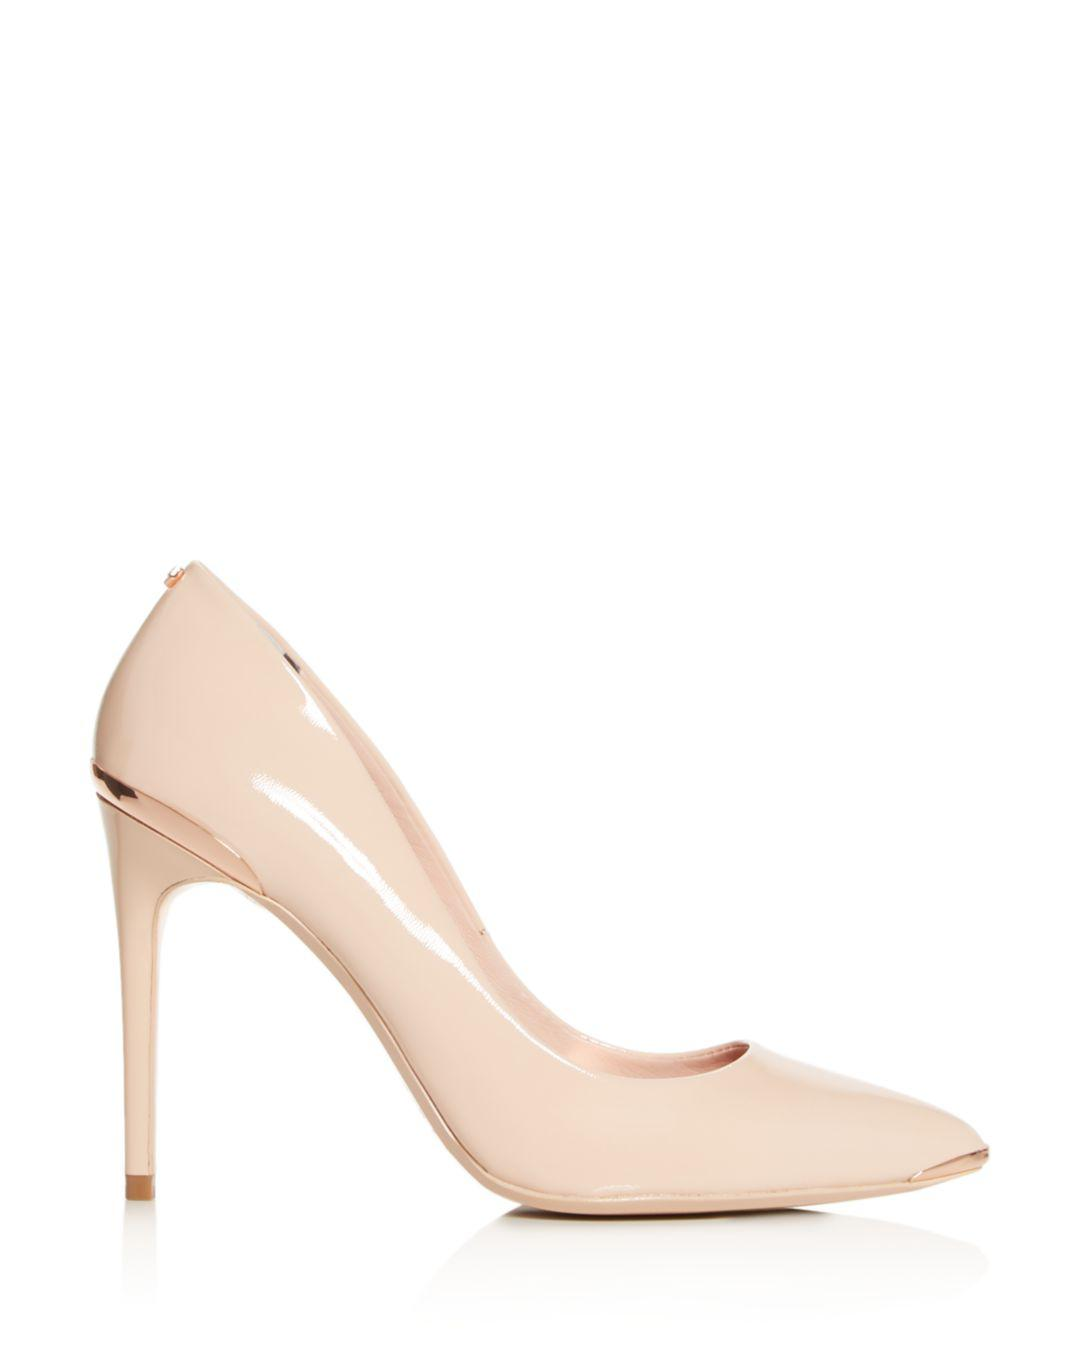 5a05c81c4ce2f Lyst - Ted Baker Women s Izibela Pointed-toe Pumps